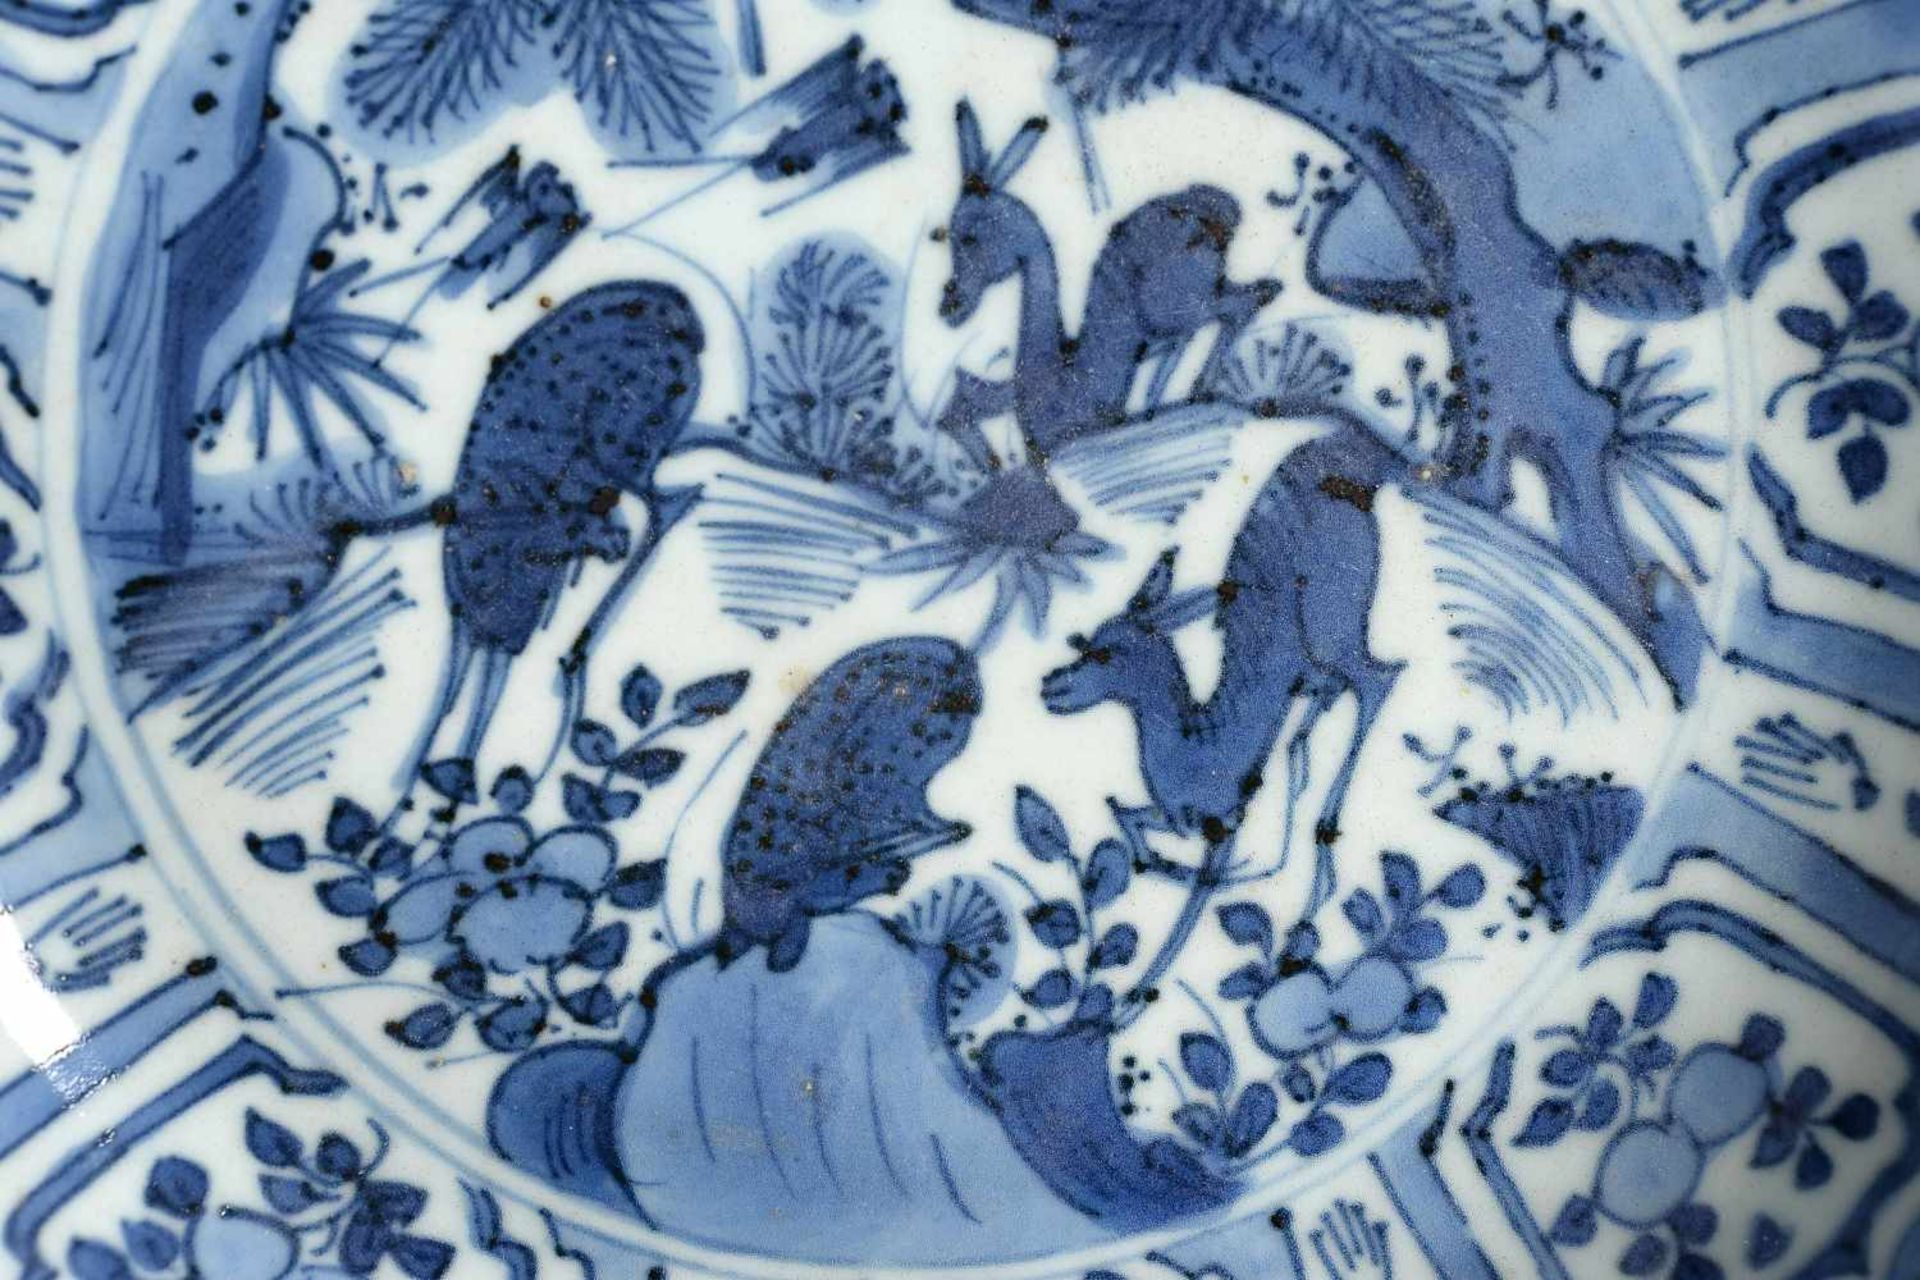 A blue and white 'kraak' porcelain deep dish, decorated with deer, birds and flowers. Unmarked. - Bild 3 aus 5